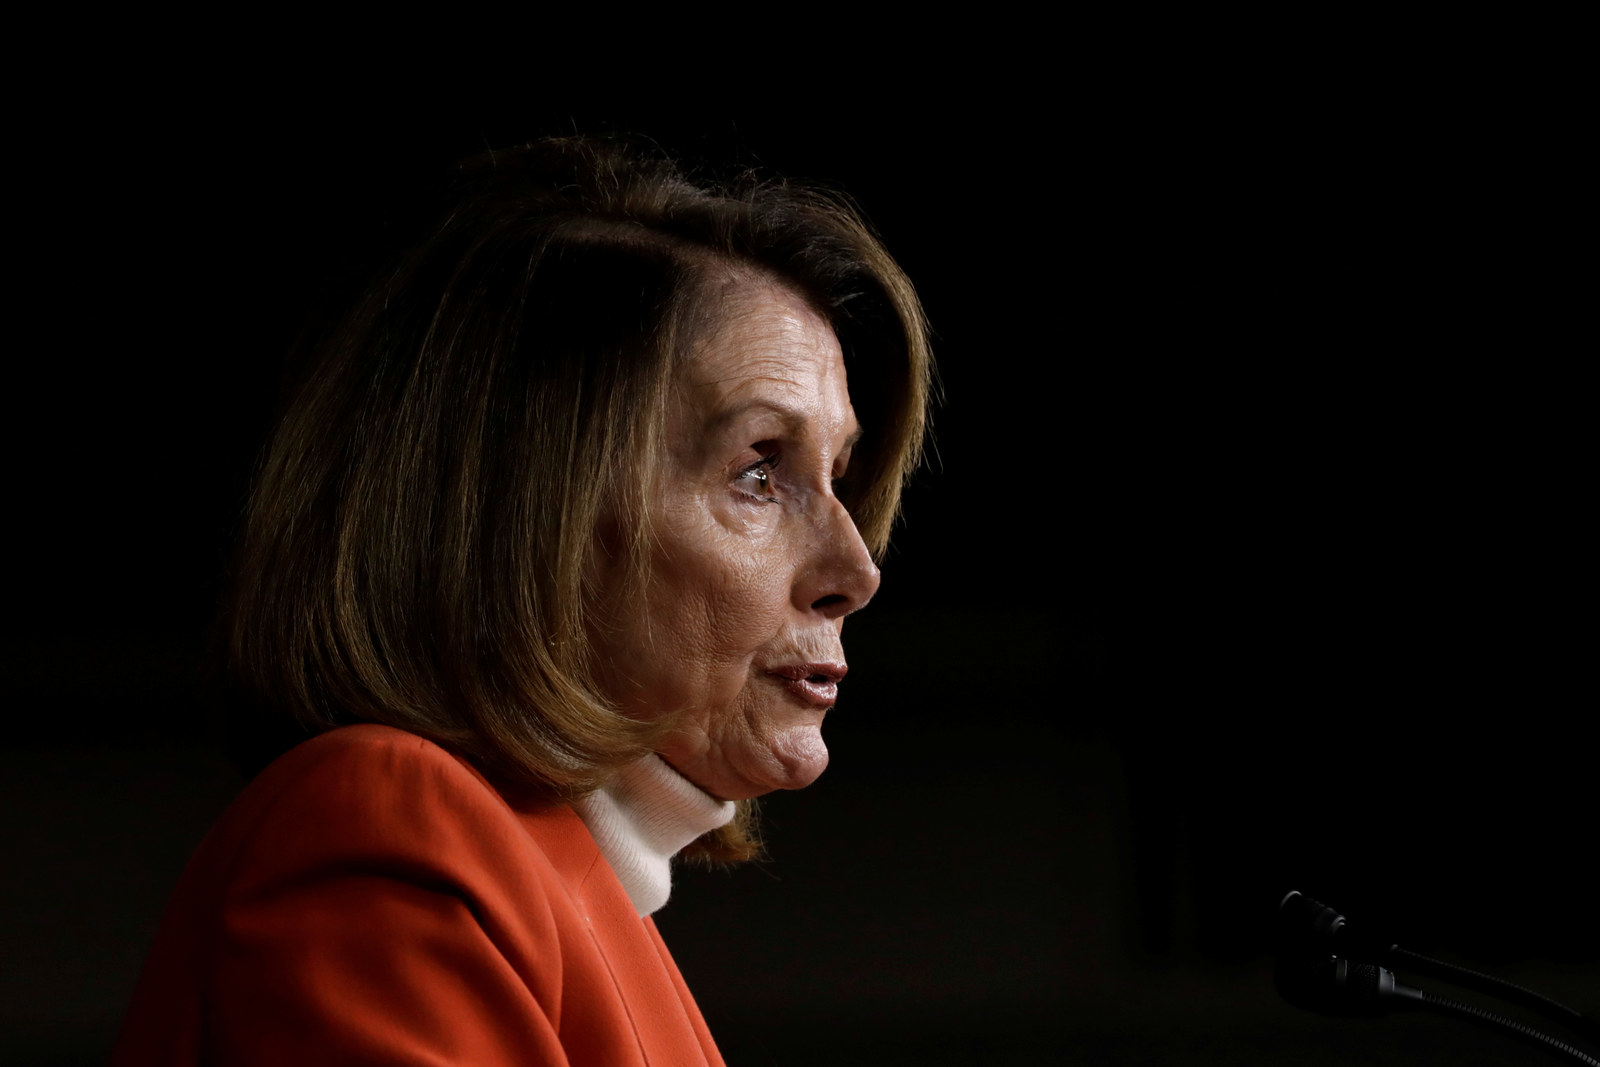 Enough Democrats Say They Oppose Pelosi To Make Her Race Close, But It's Not Clear If They Can Beat Her